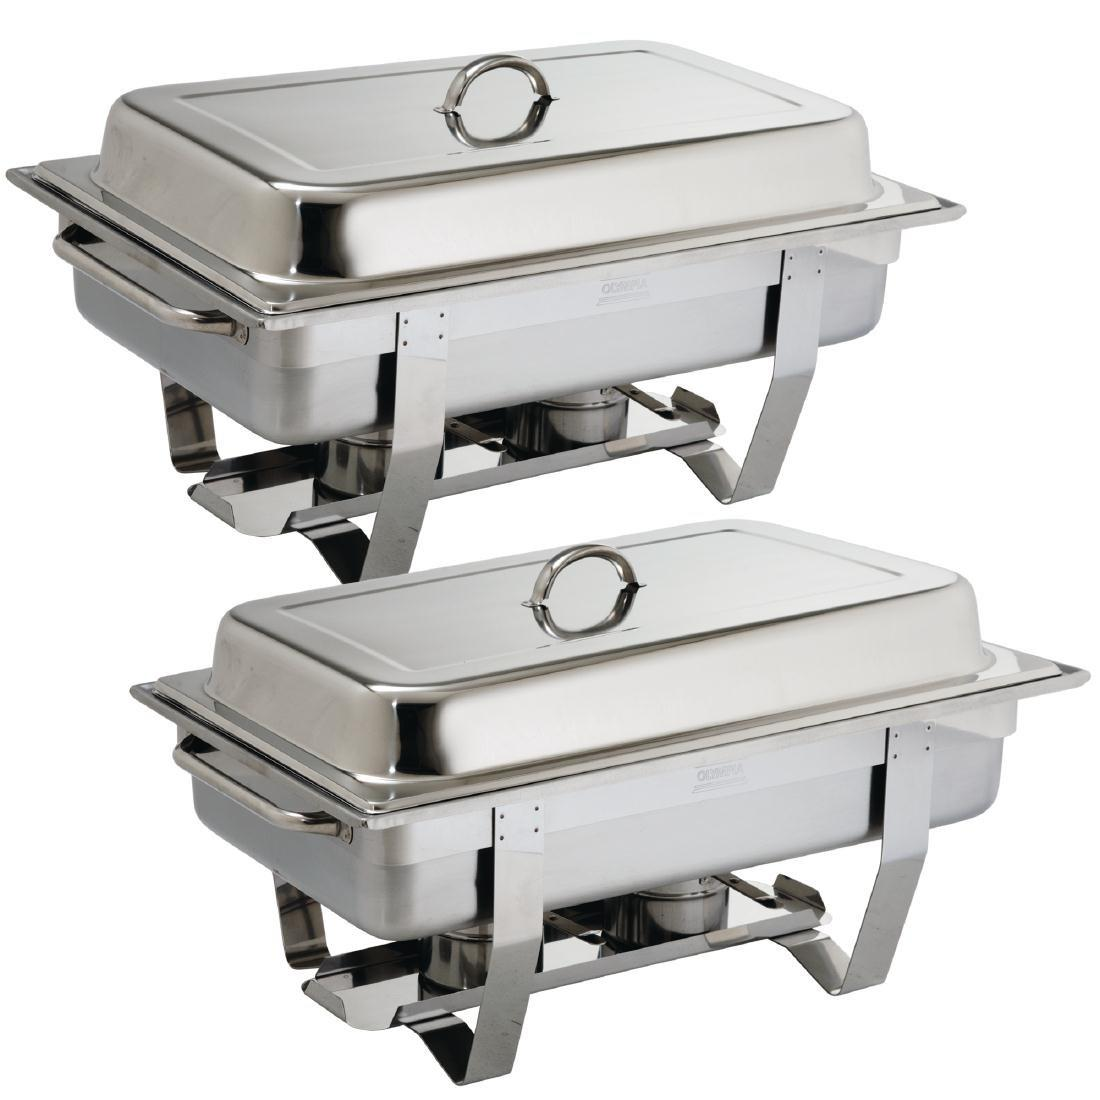 Juego de 2 chafing dish Gastronorm 1/1 Milán Olympia S300